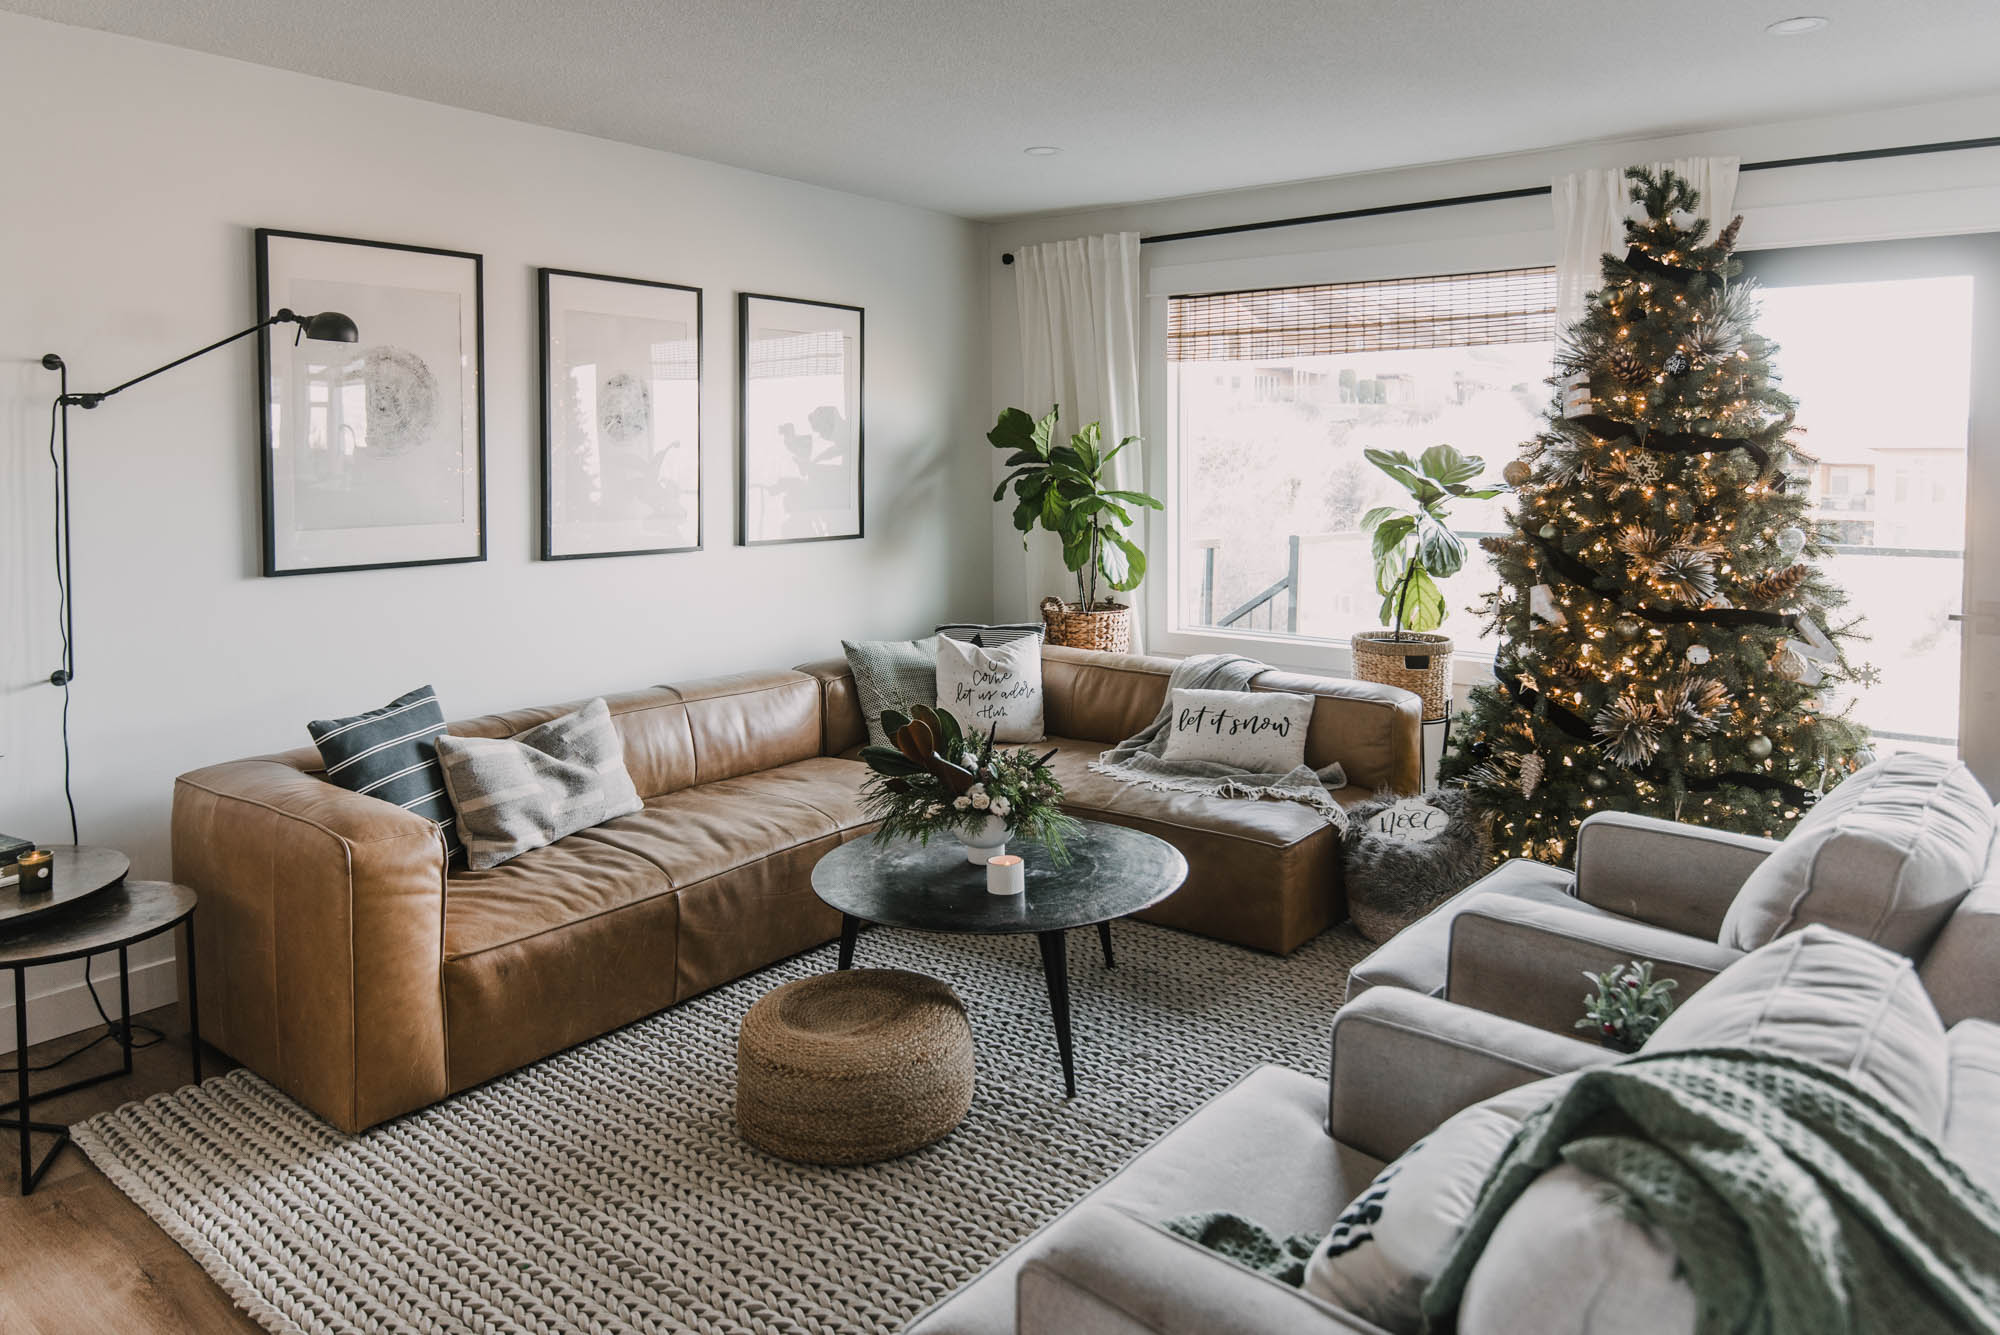 Modern Cozy Holiday Home Tour